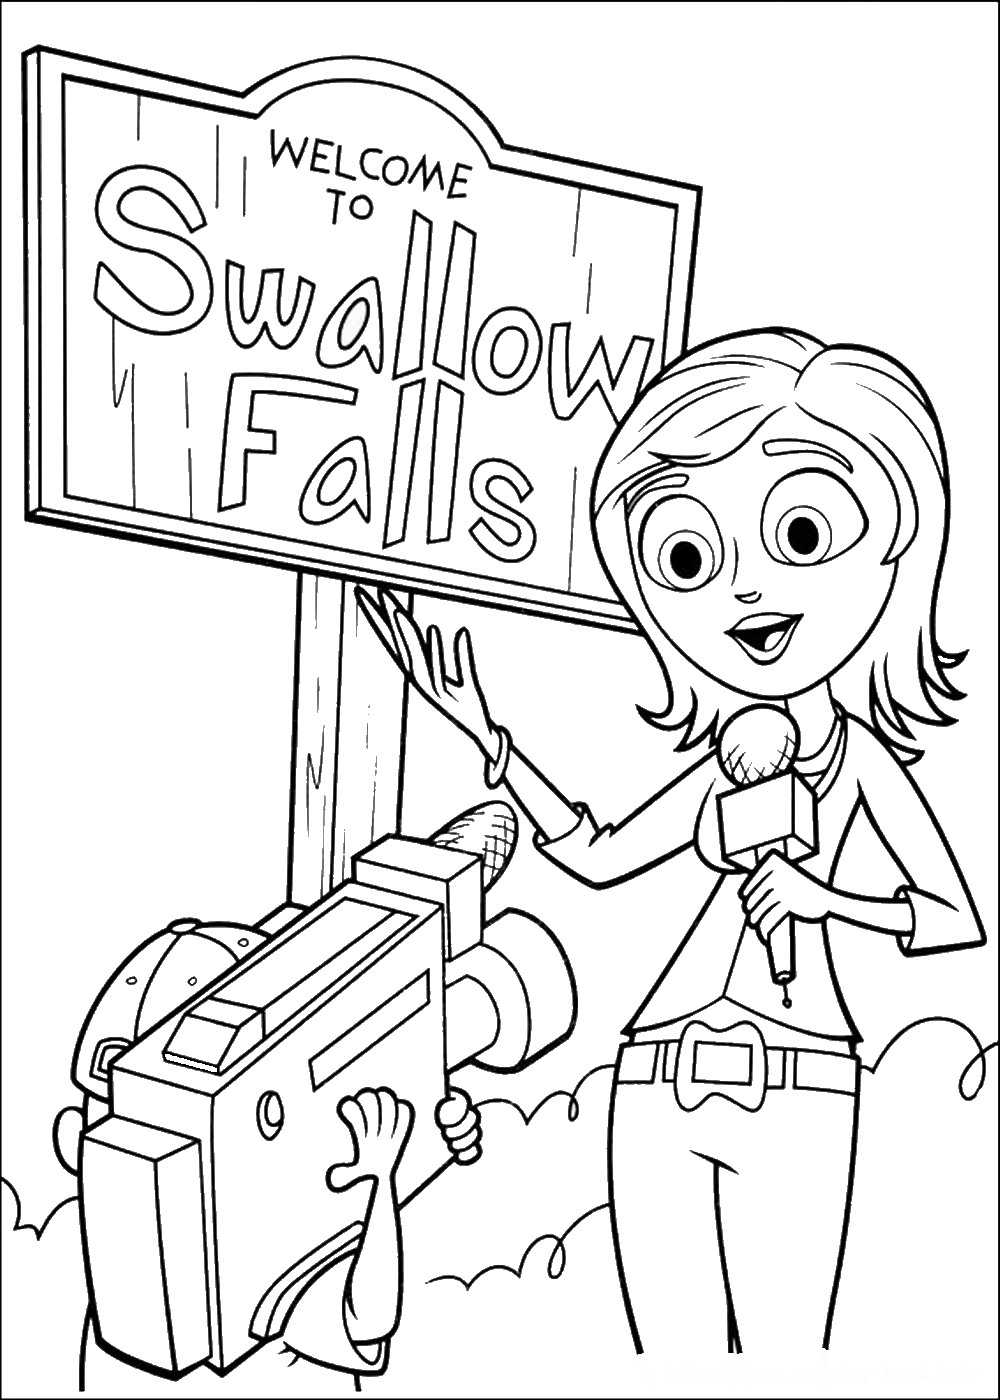 cloudy with a chance of meatballs 2 coloring pages kids n funcom 32 coloring pages of cloudy with a chance with cloudy coloring 2 pages of chance a meatballs